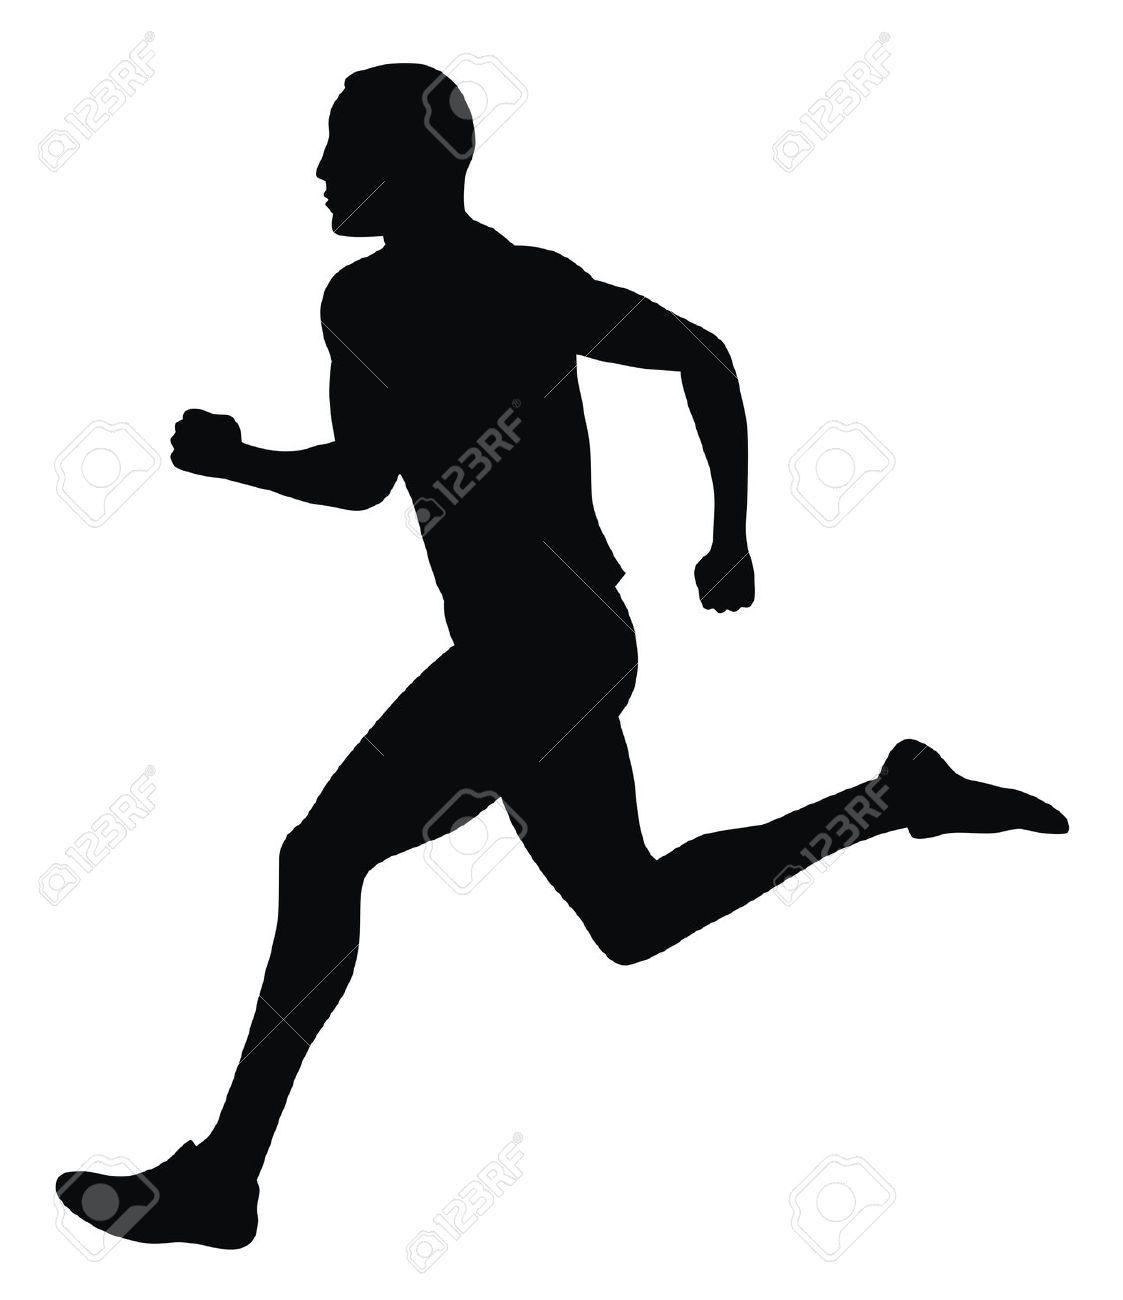 Male Runner Silhouette